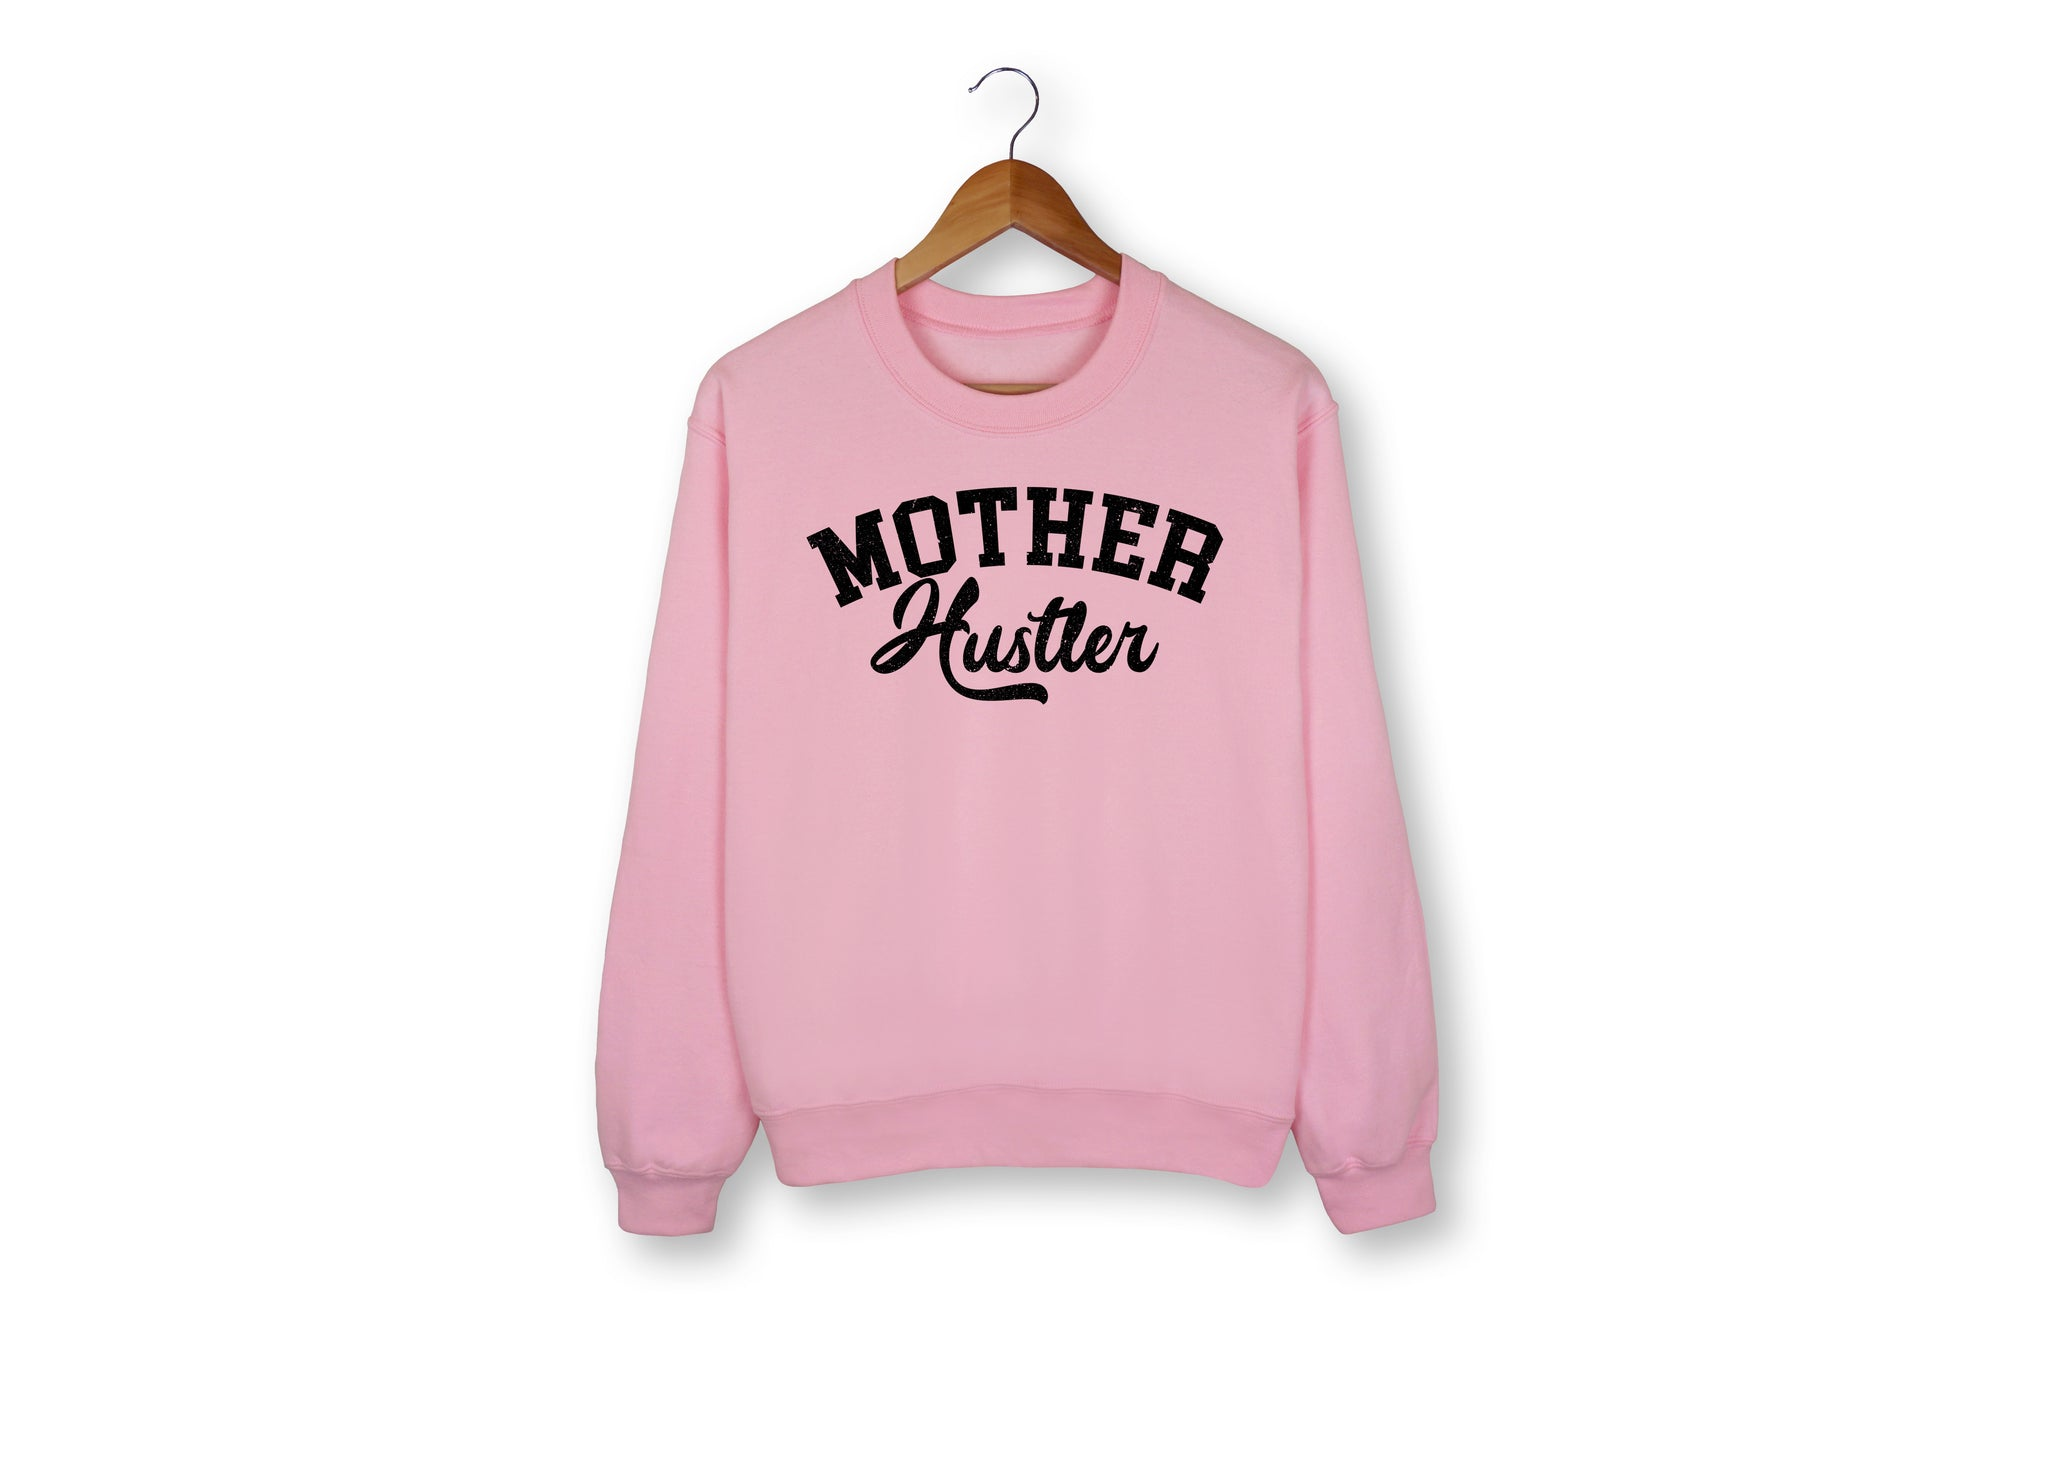 Mother Hustler Sweatshirt